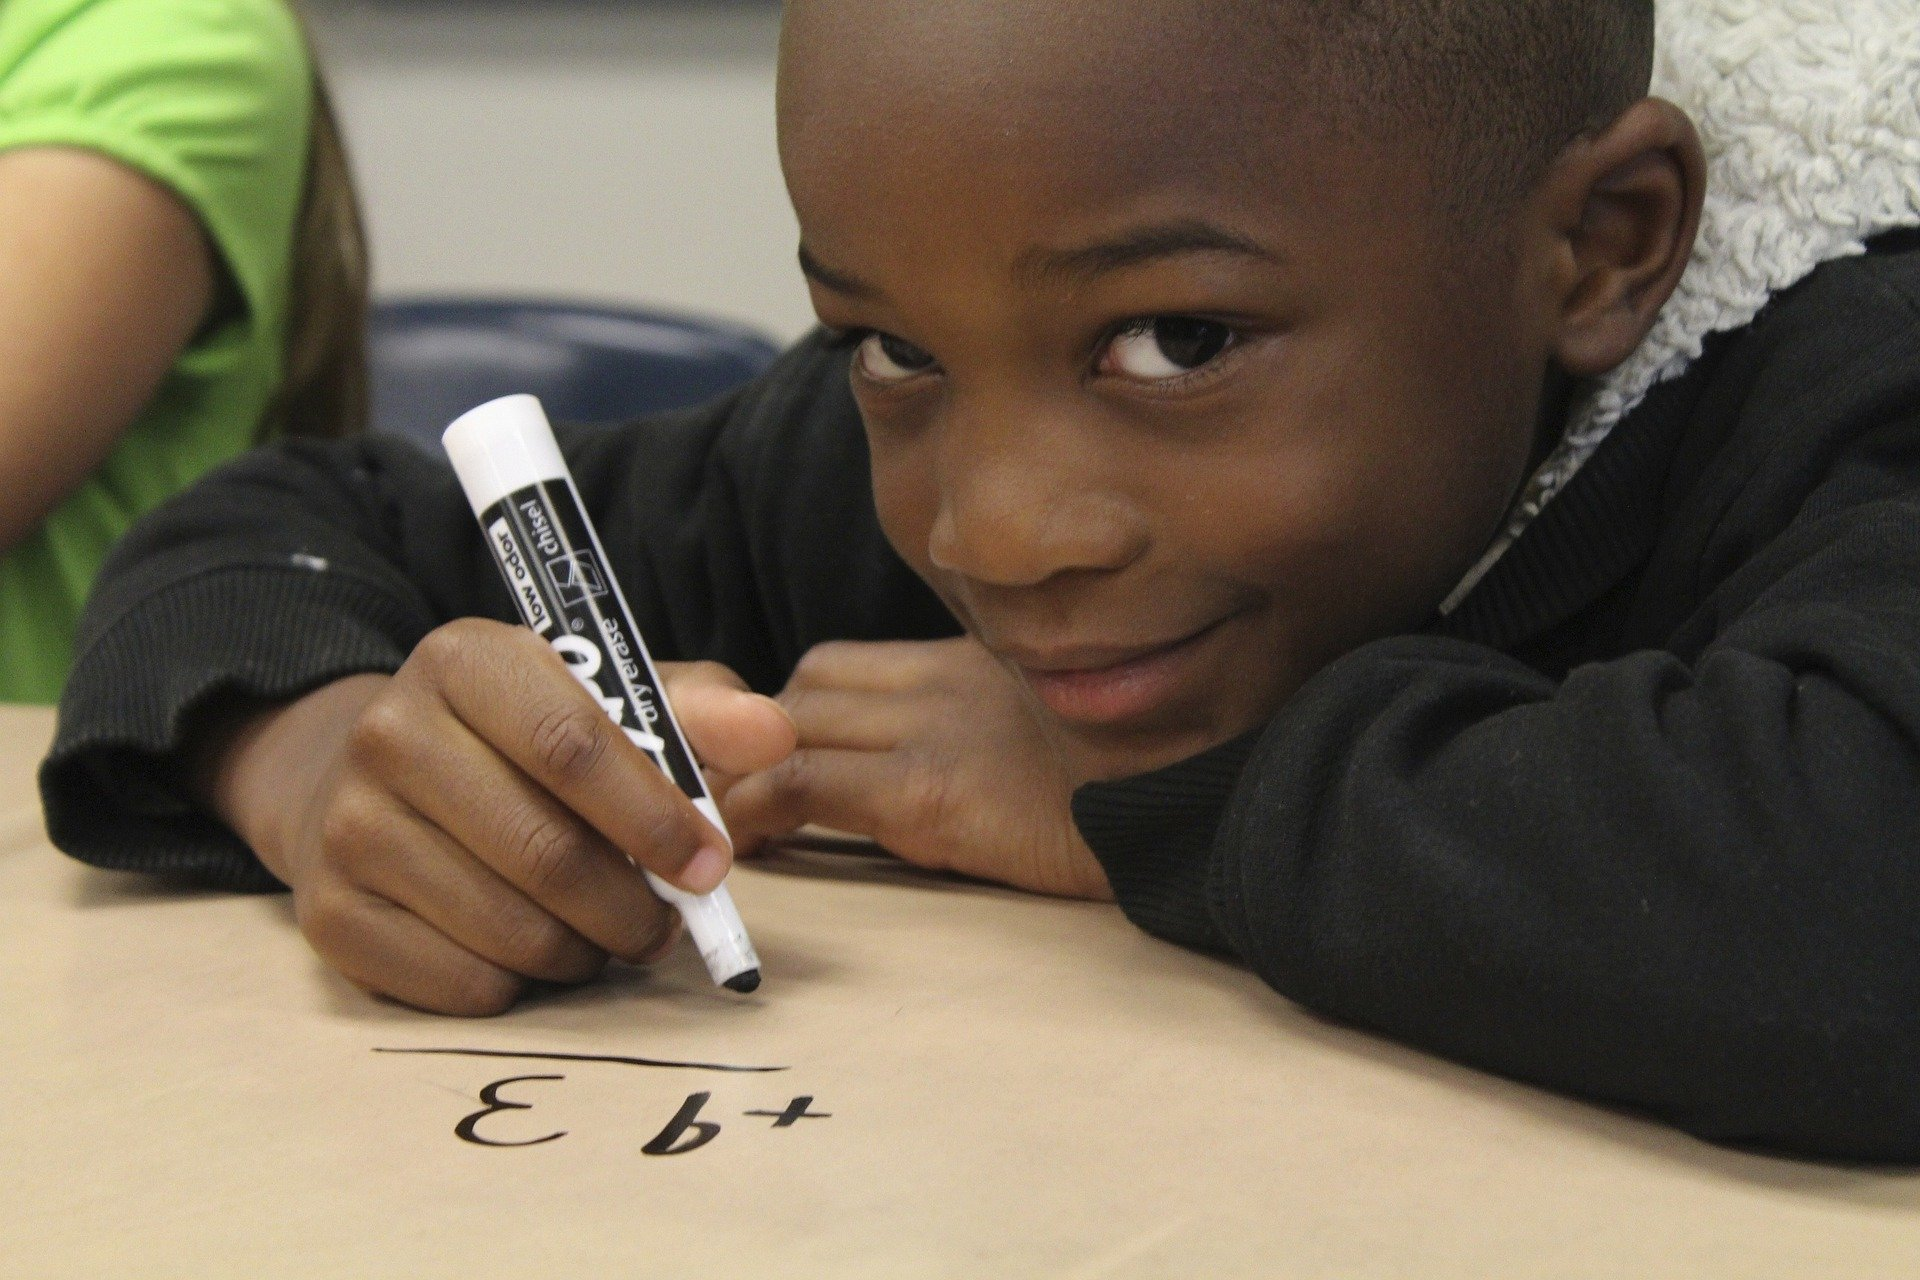 Cute little boy learning math in class. | Source: Pixabay